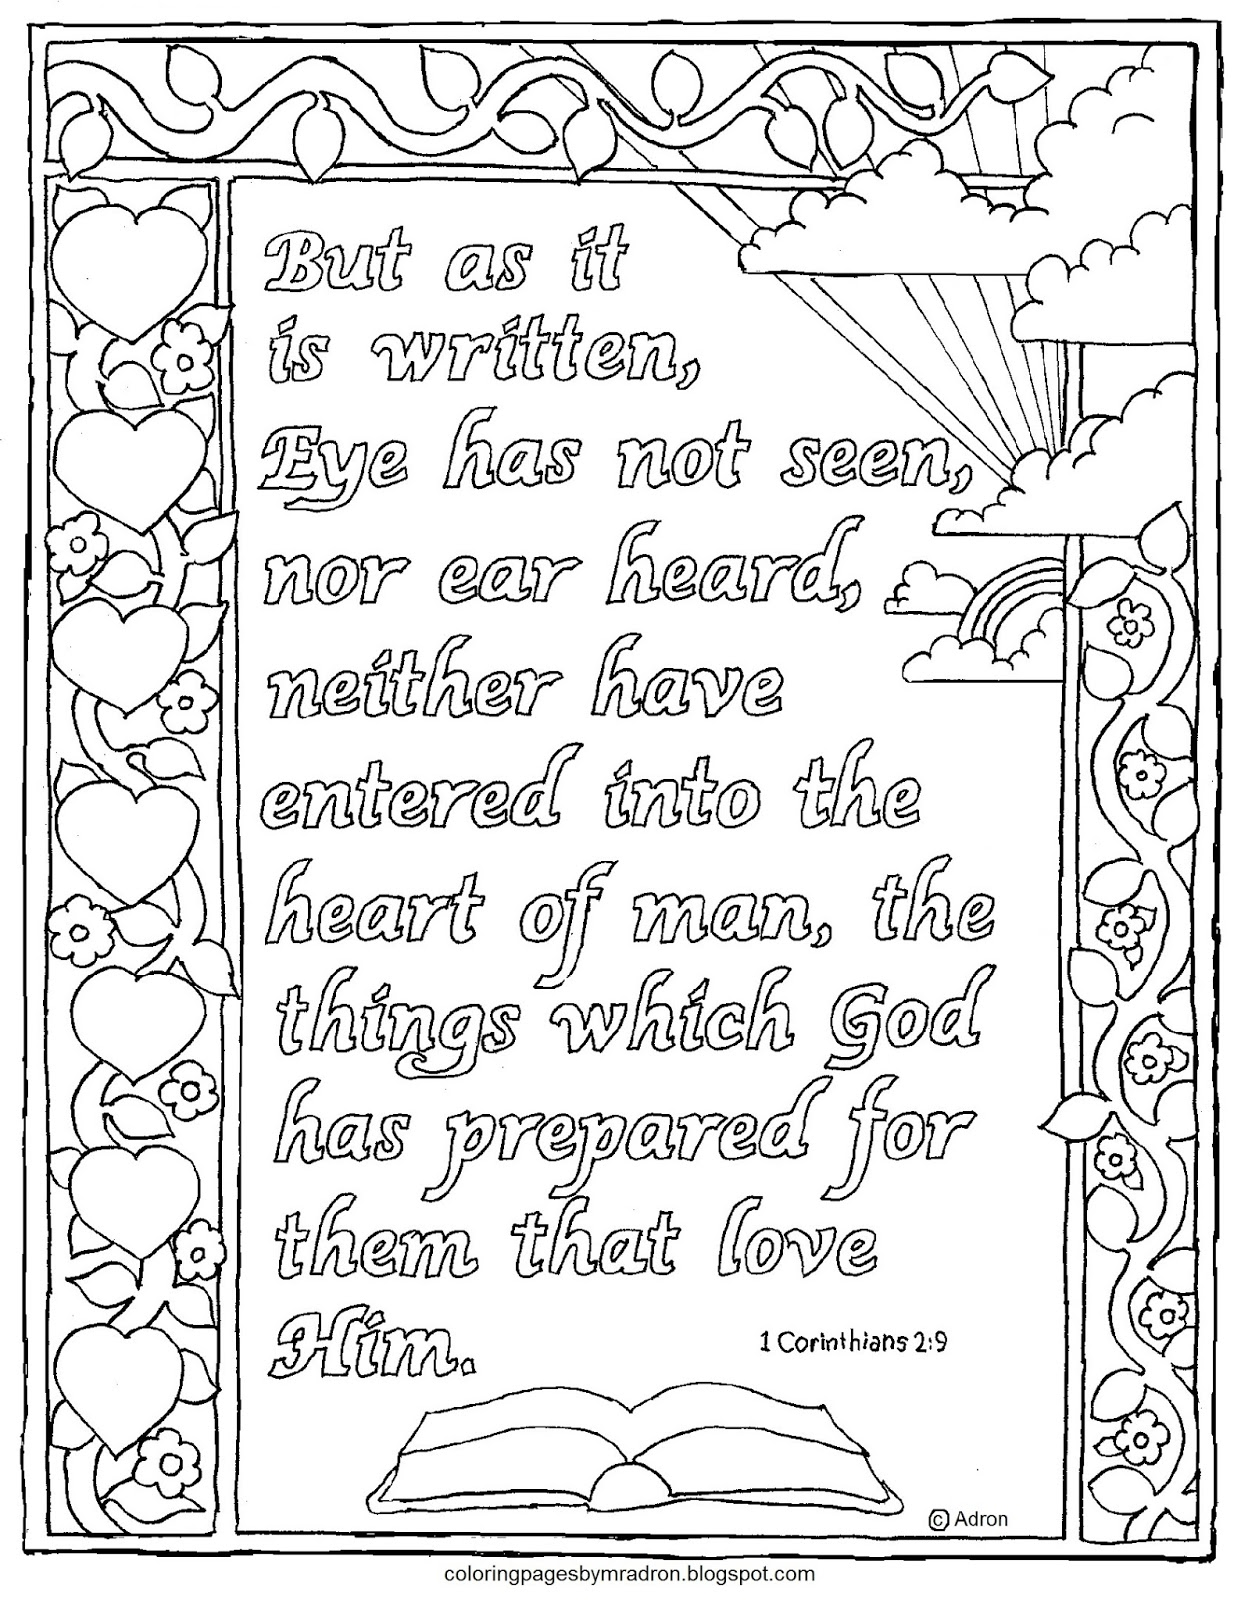 Coloring Pages for Kids by Mr. Adron: 1 Corinthians 2:9